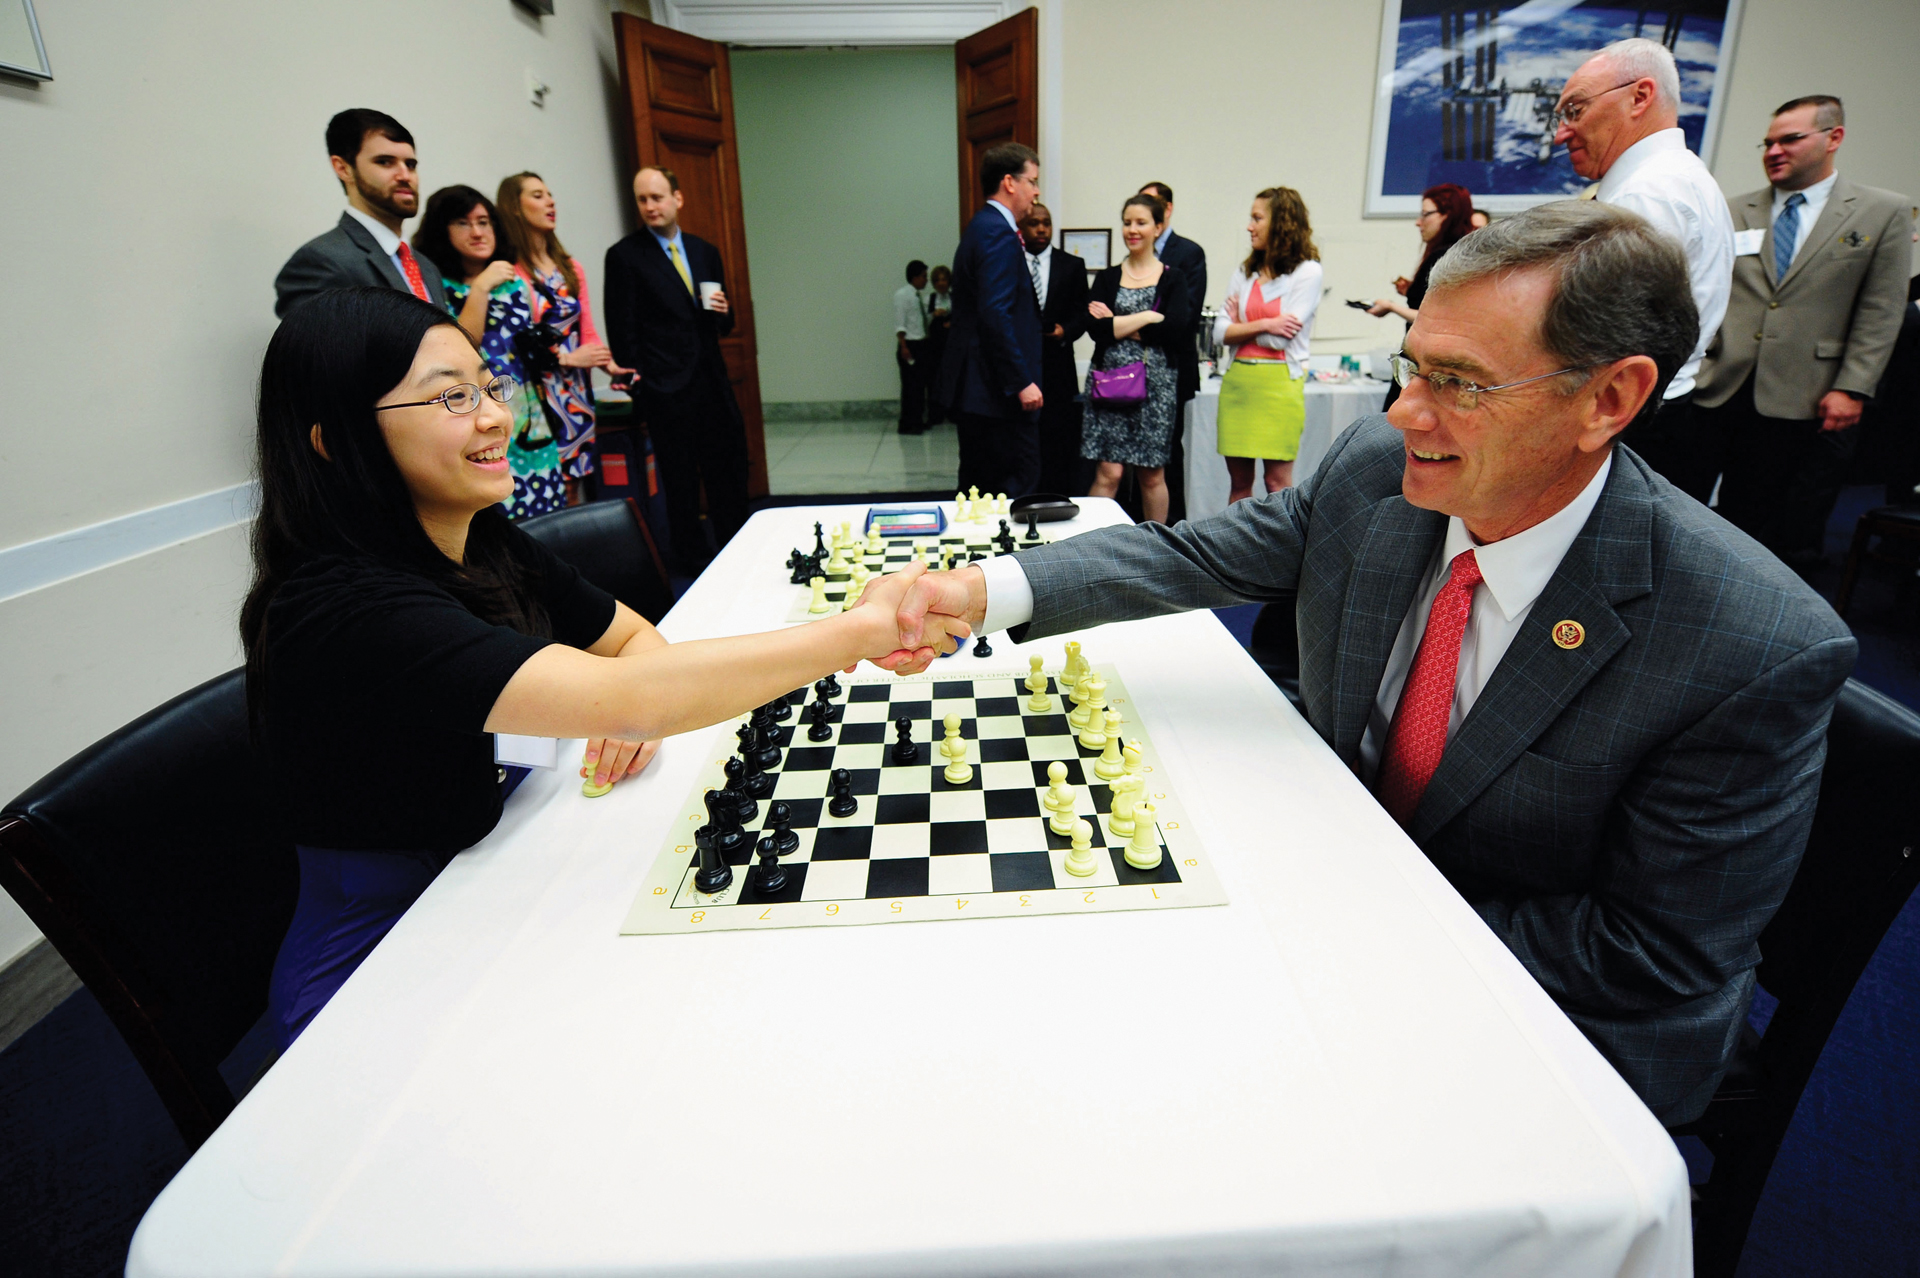 Congressional Chess Match, 2013